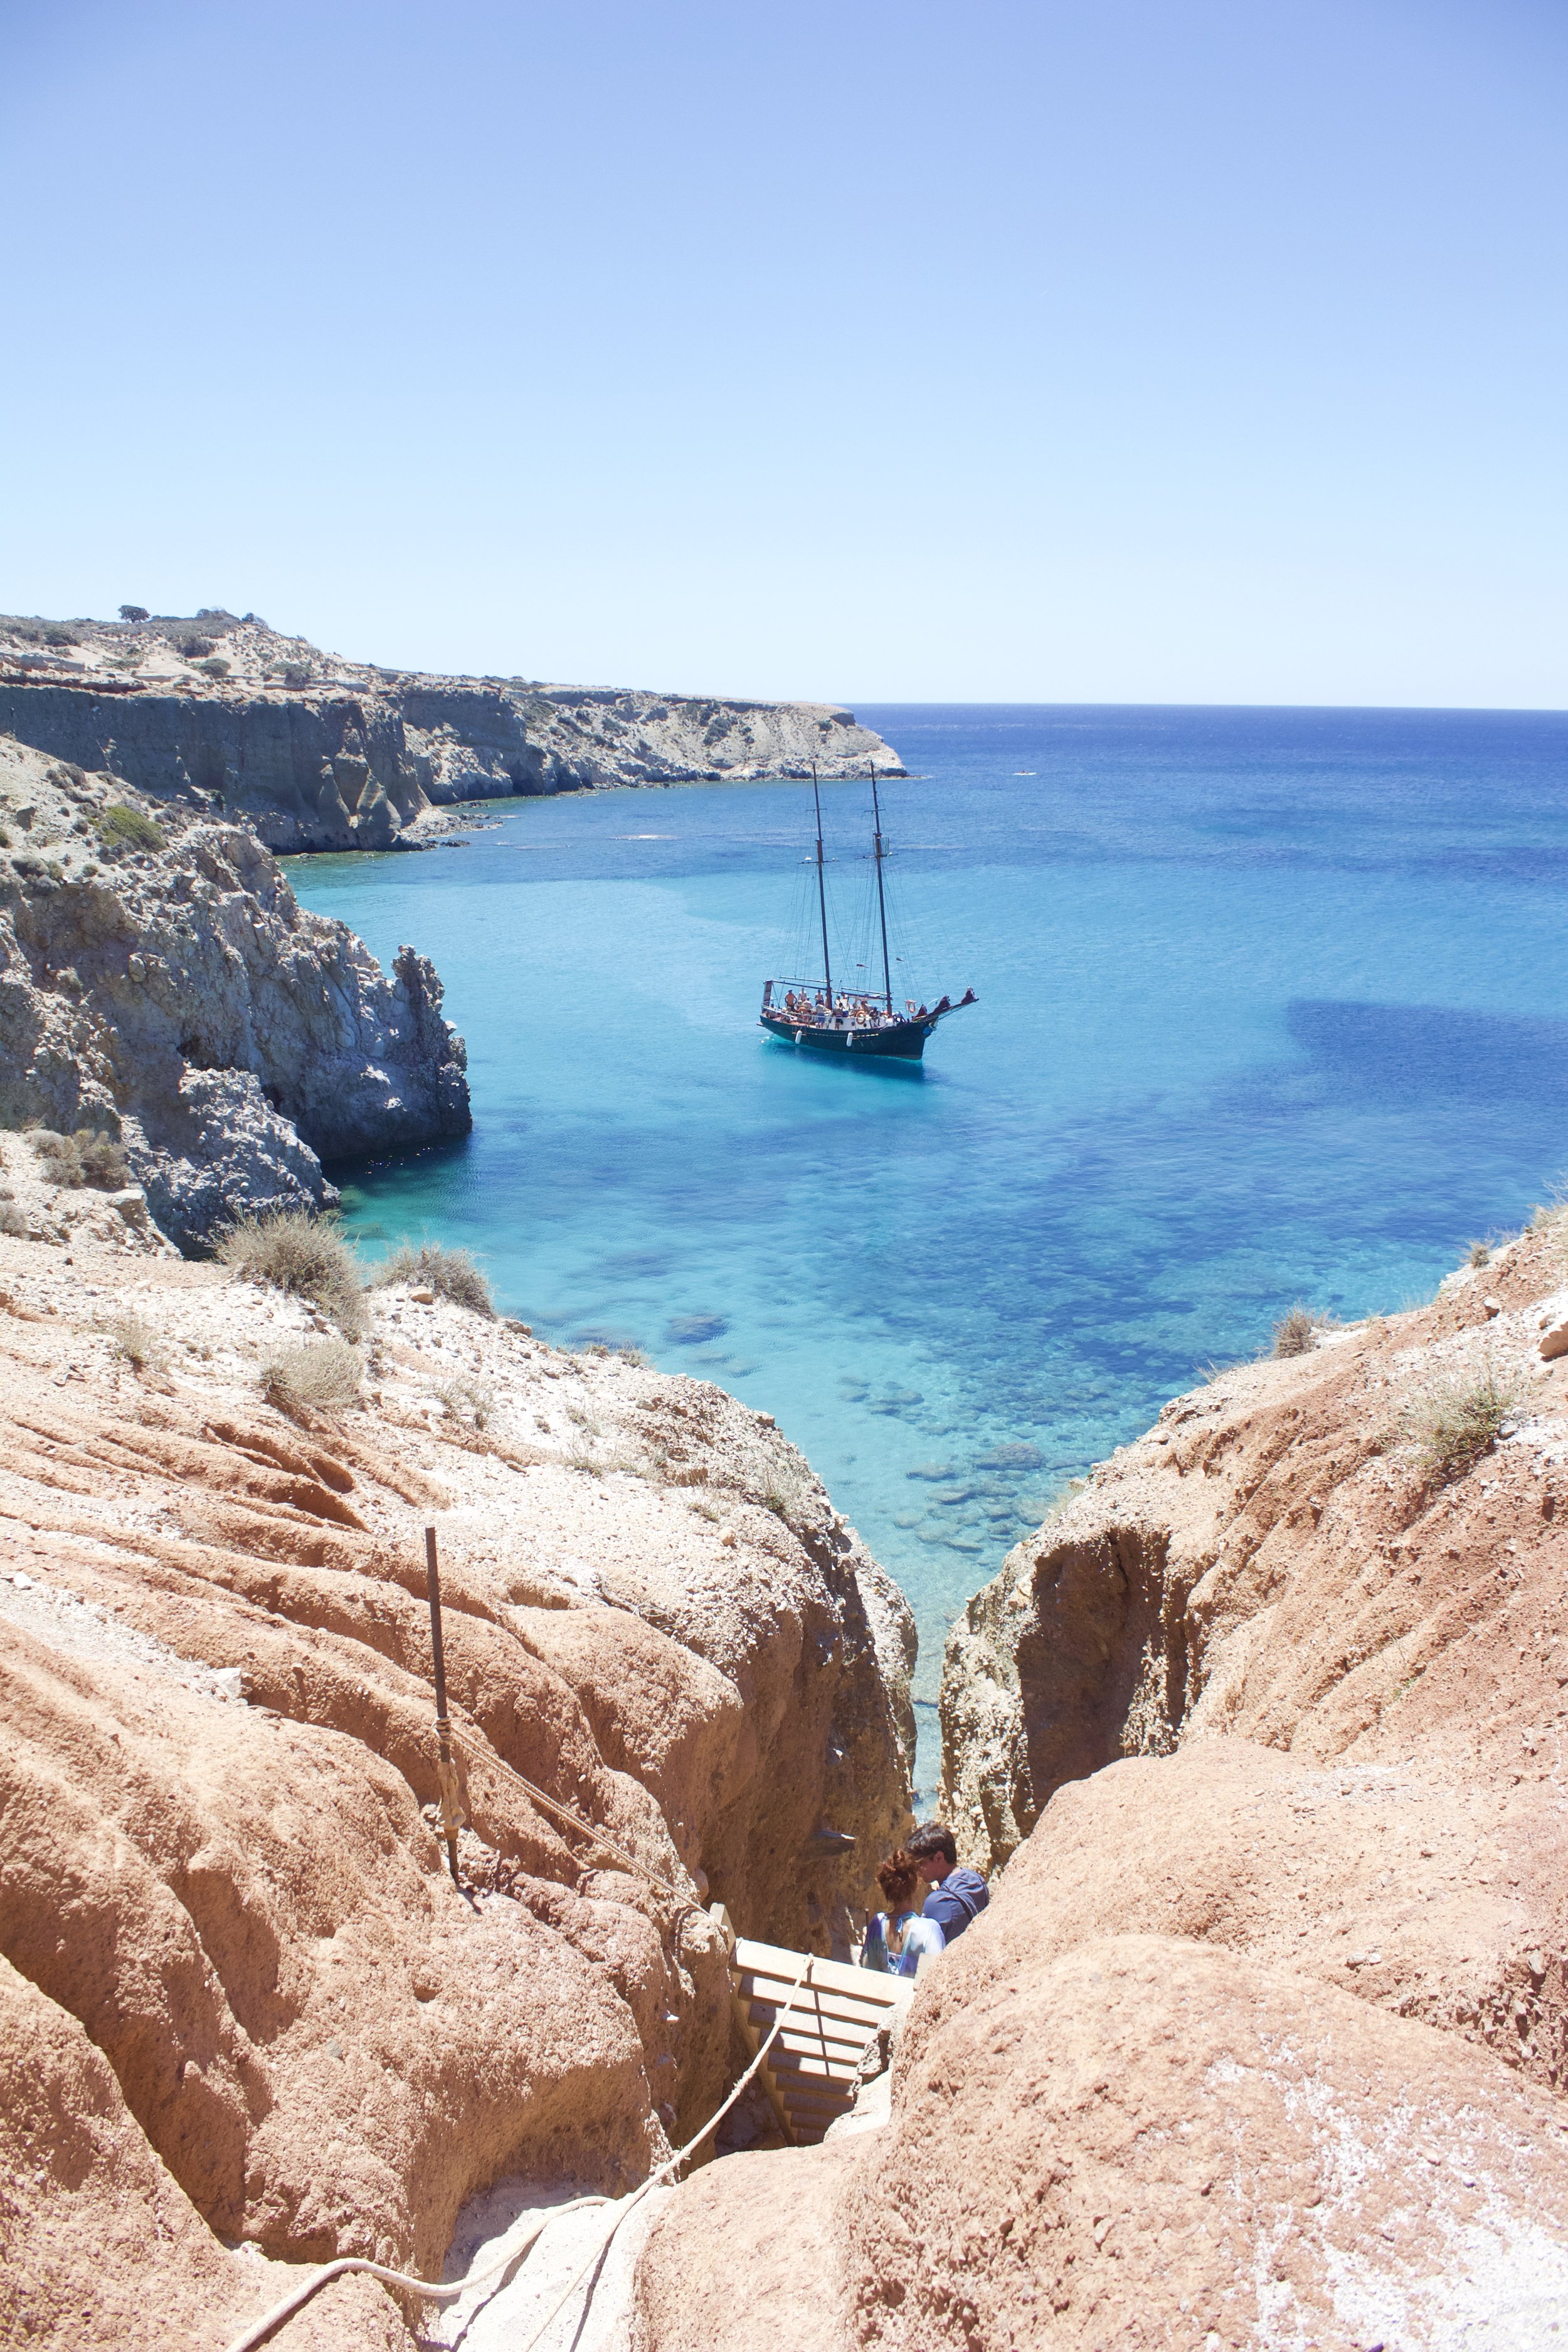 Tsigrado Beach, Milos. Accessible only by rope and ladder.